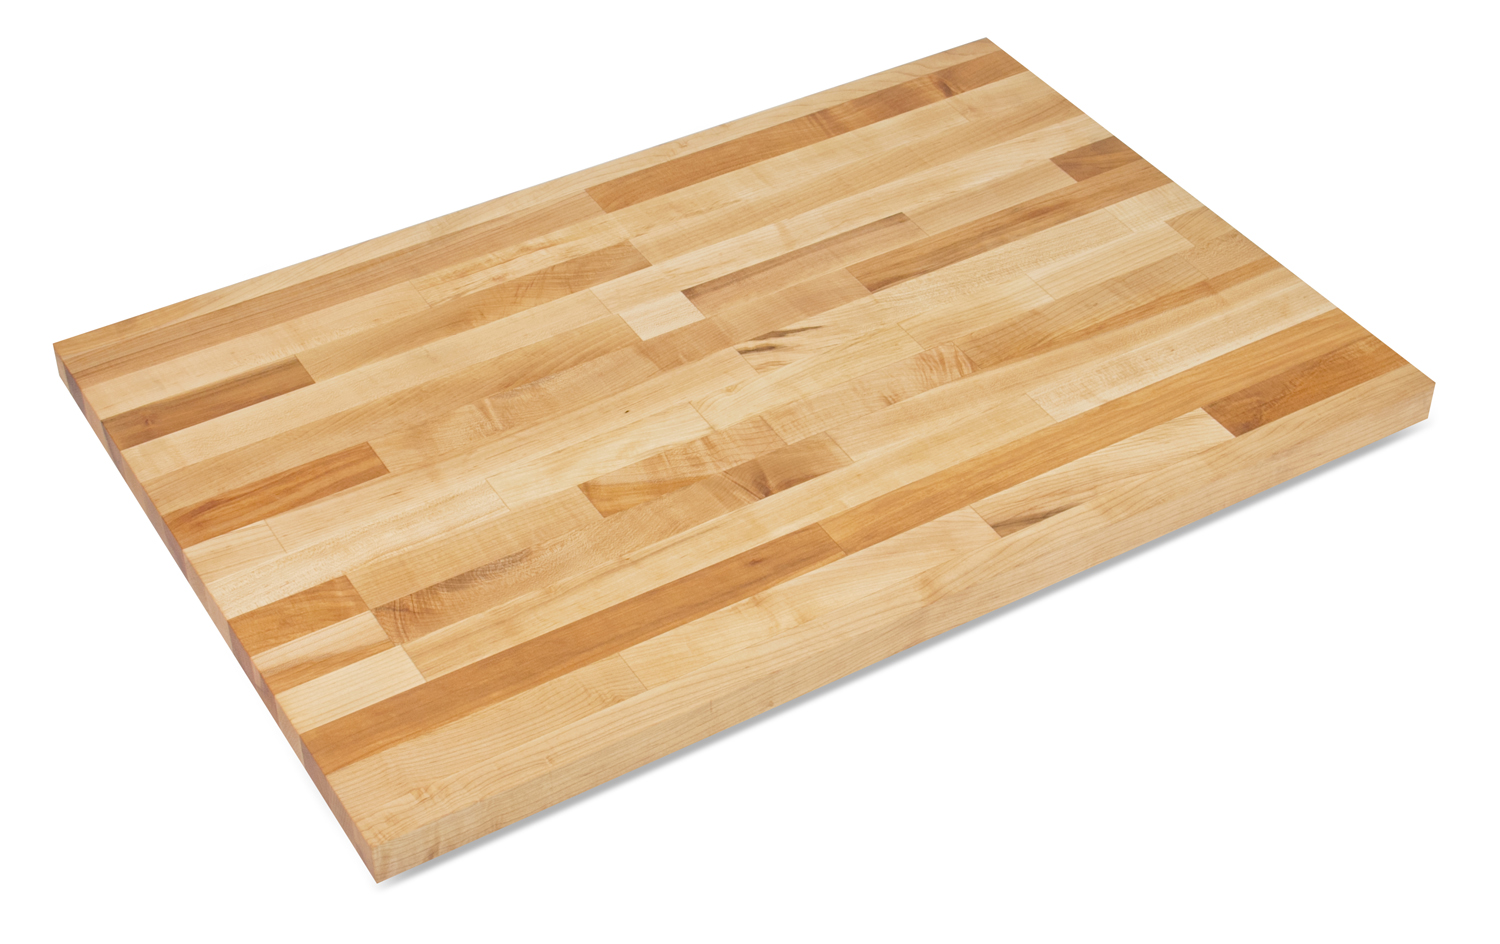 42 inch wide commercial butcher block counters 1.75 inches thick